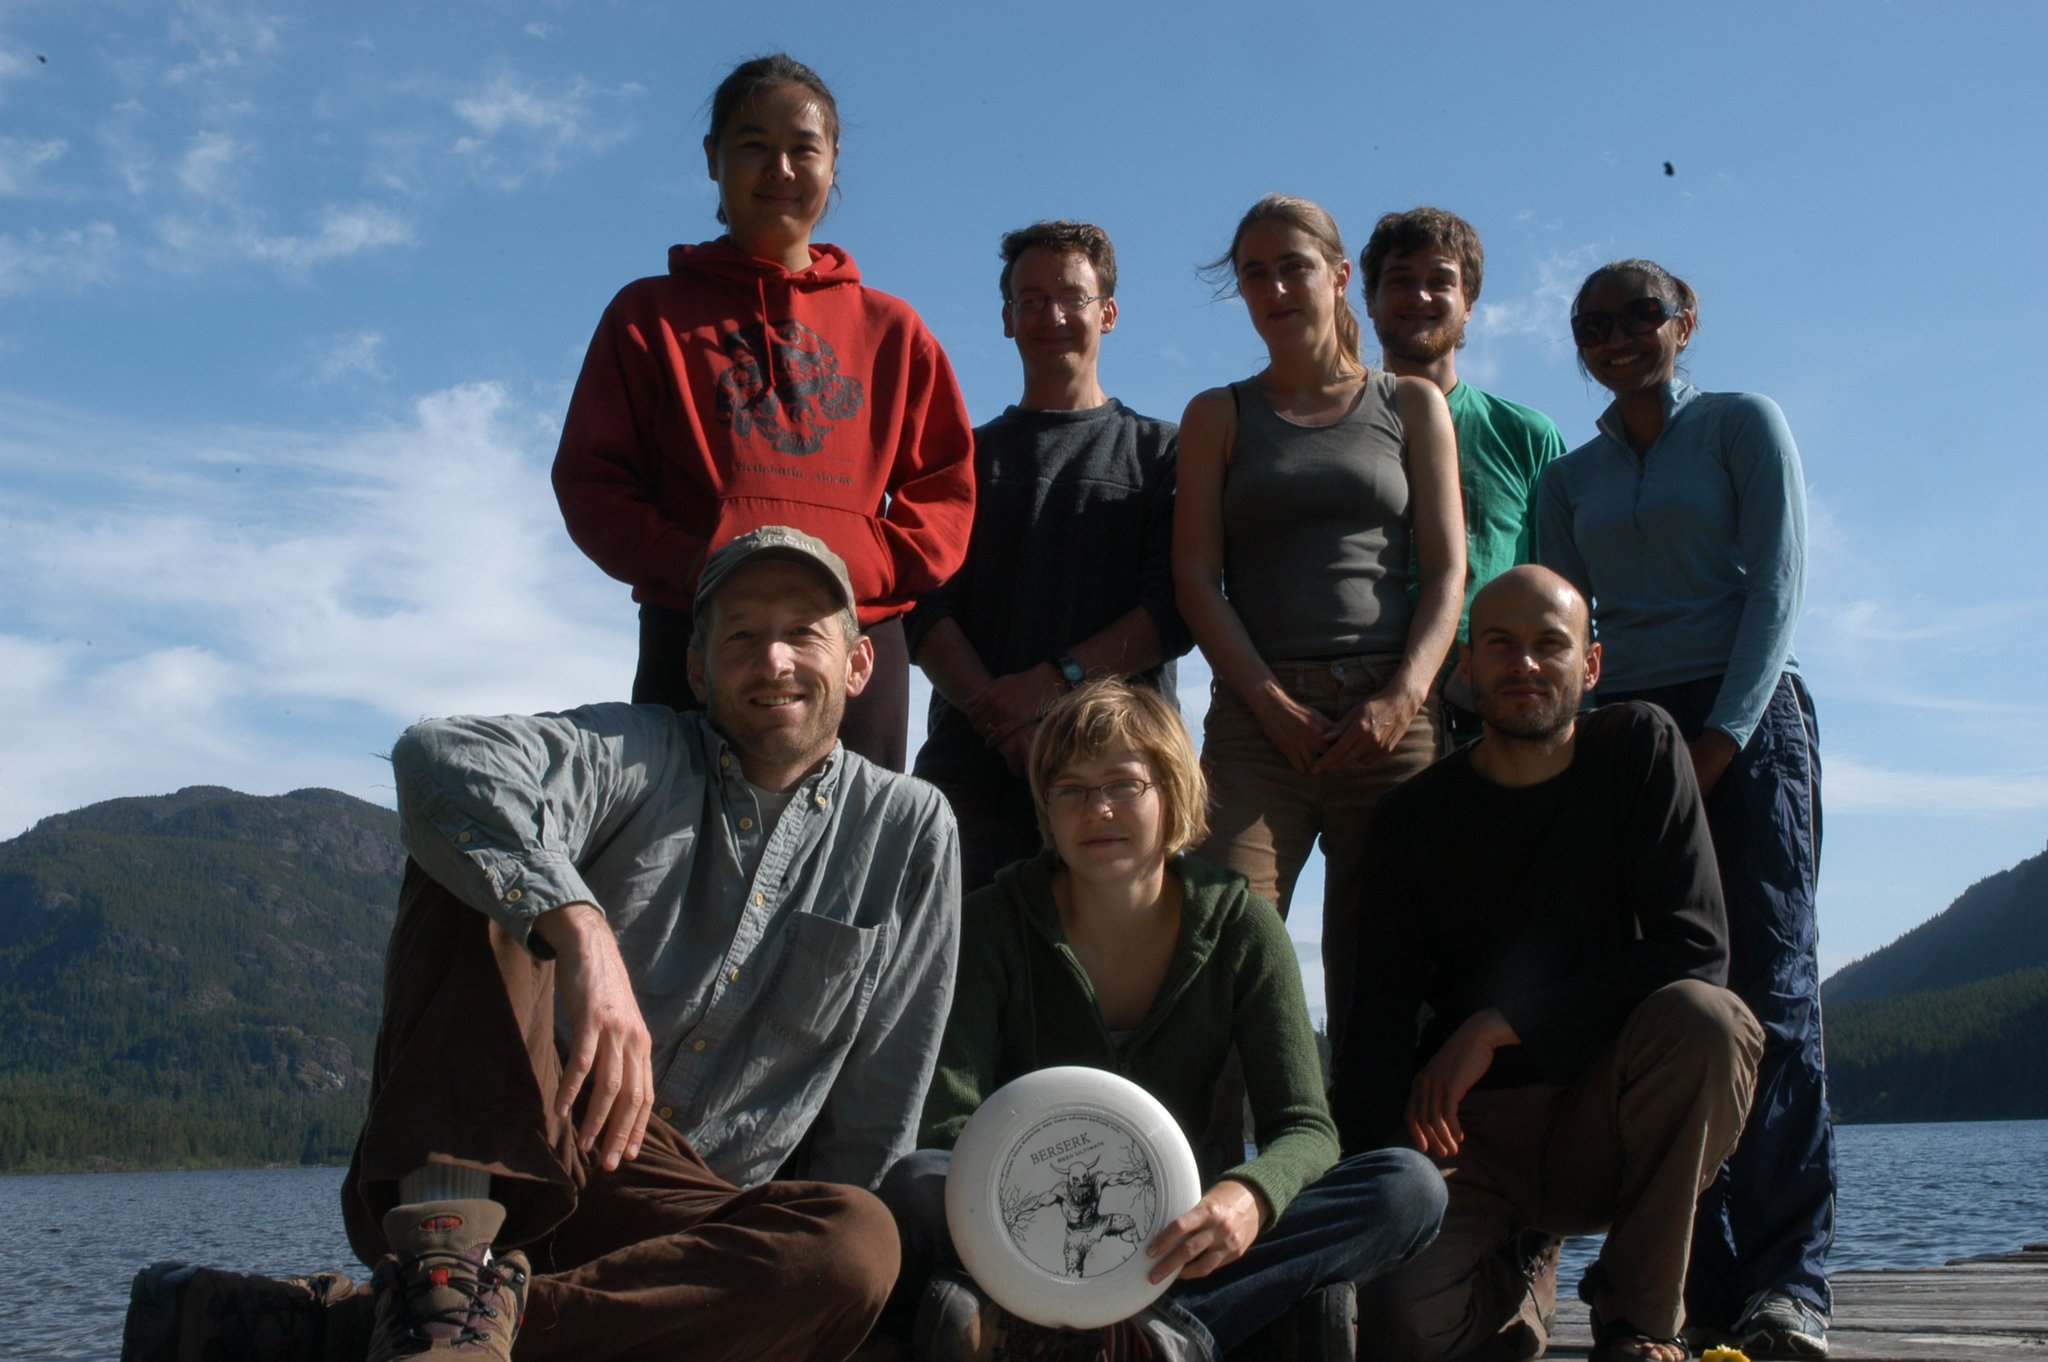 In appreciation of my goofy colleagues: 1st @DanielBolnick vs @EcoEvoEvoEco lab ultimate field tournament 2006. https://t.co/a3CpPG0Top